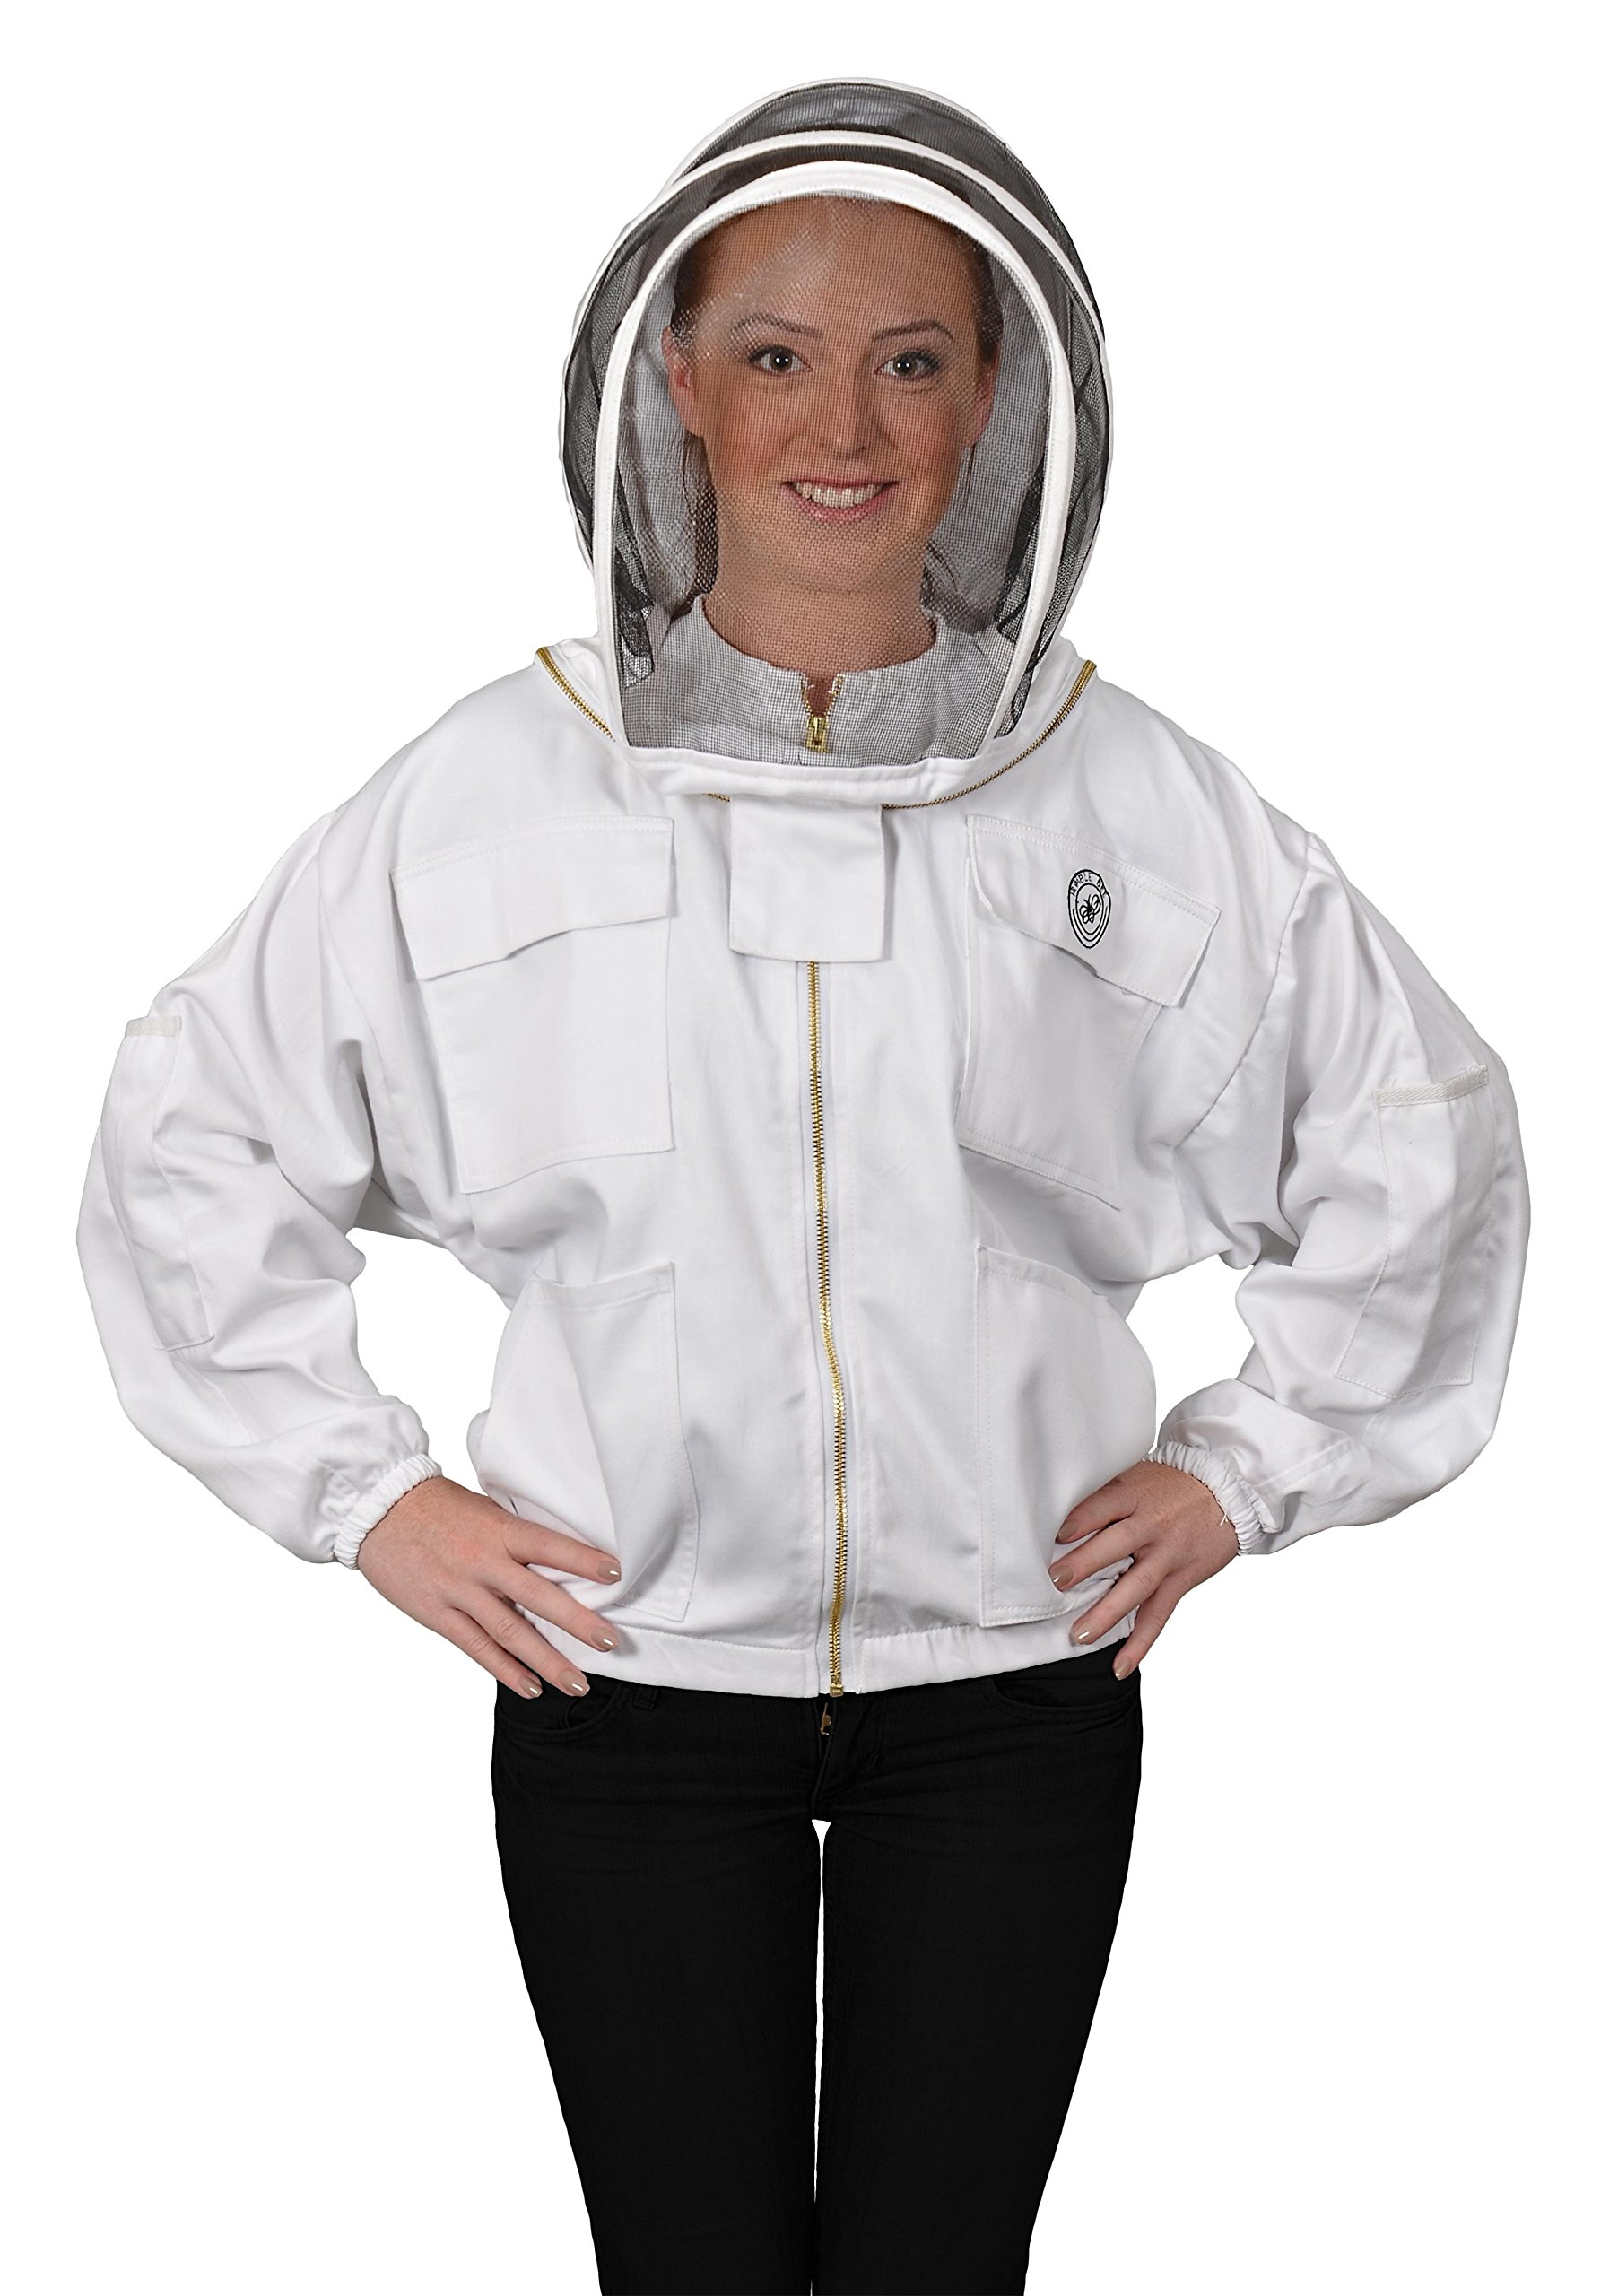 Humble Bee 311-L Polycotton Beekeeping Jacket with Fencing Veil (Large)